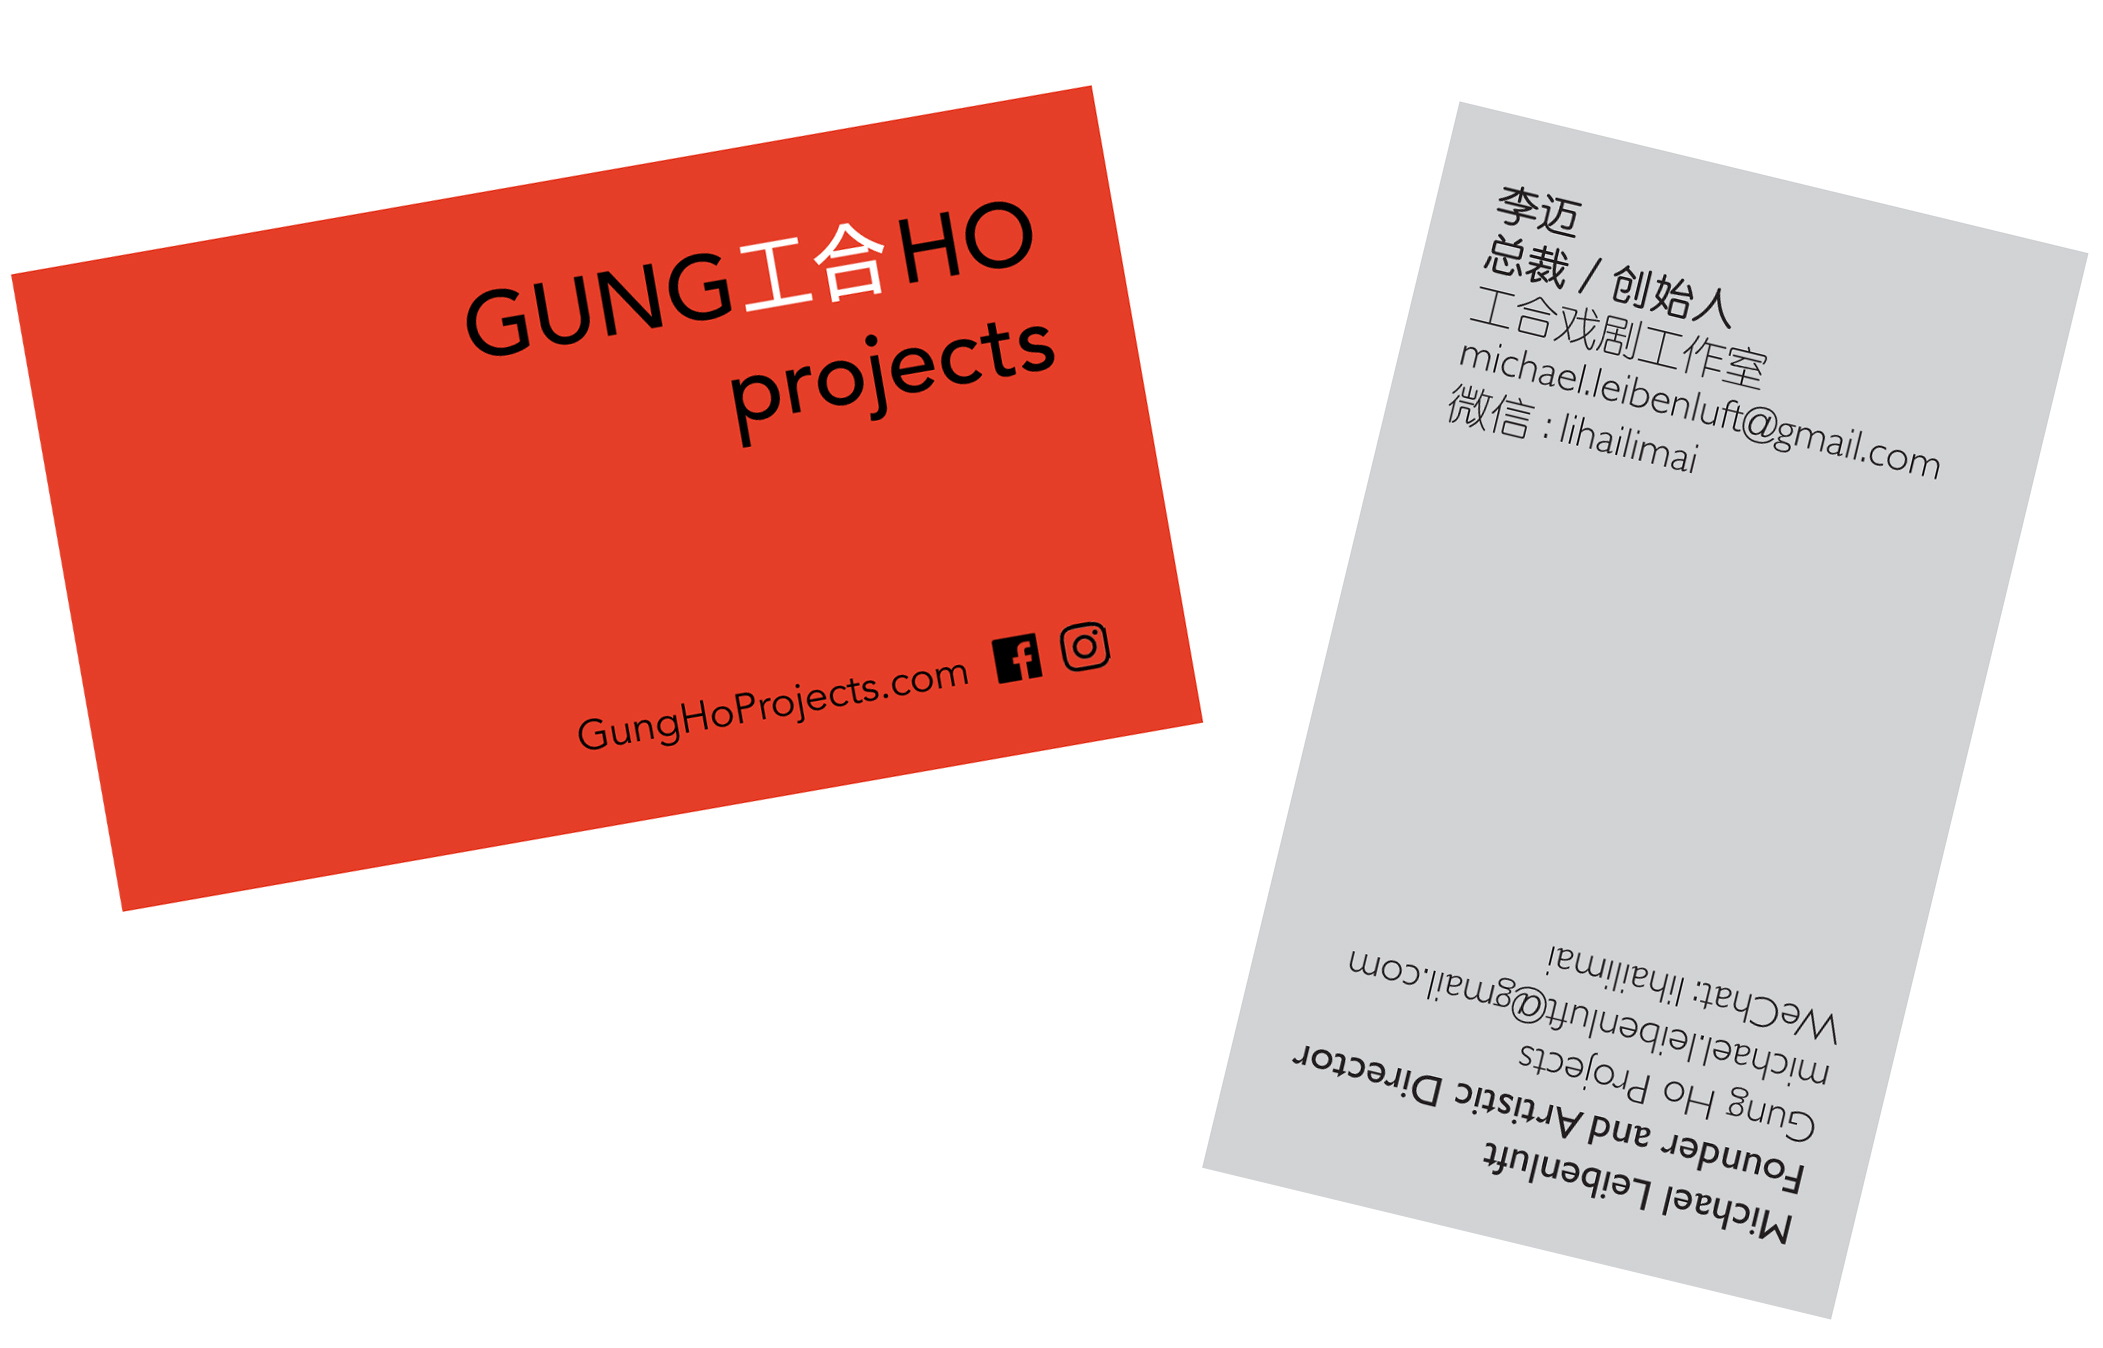 Gungho projects